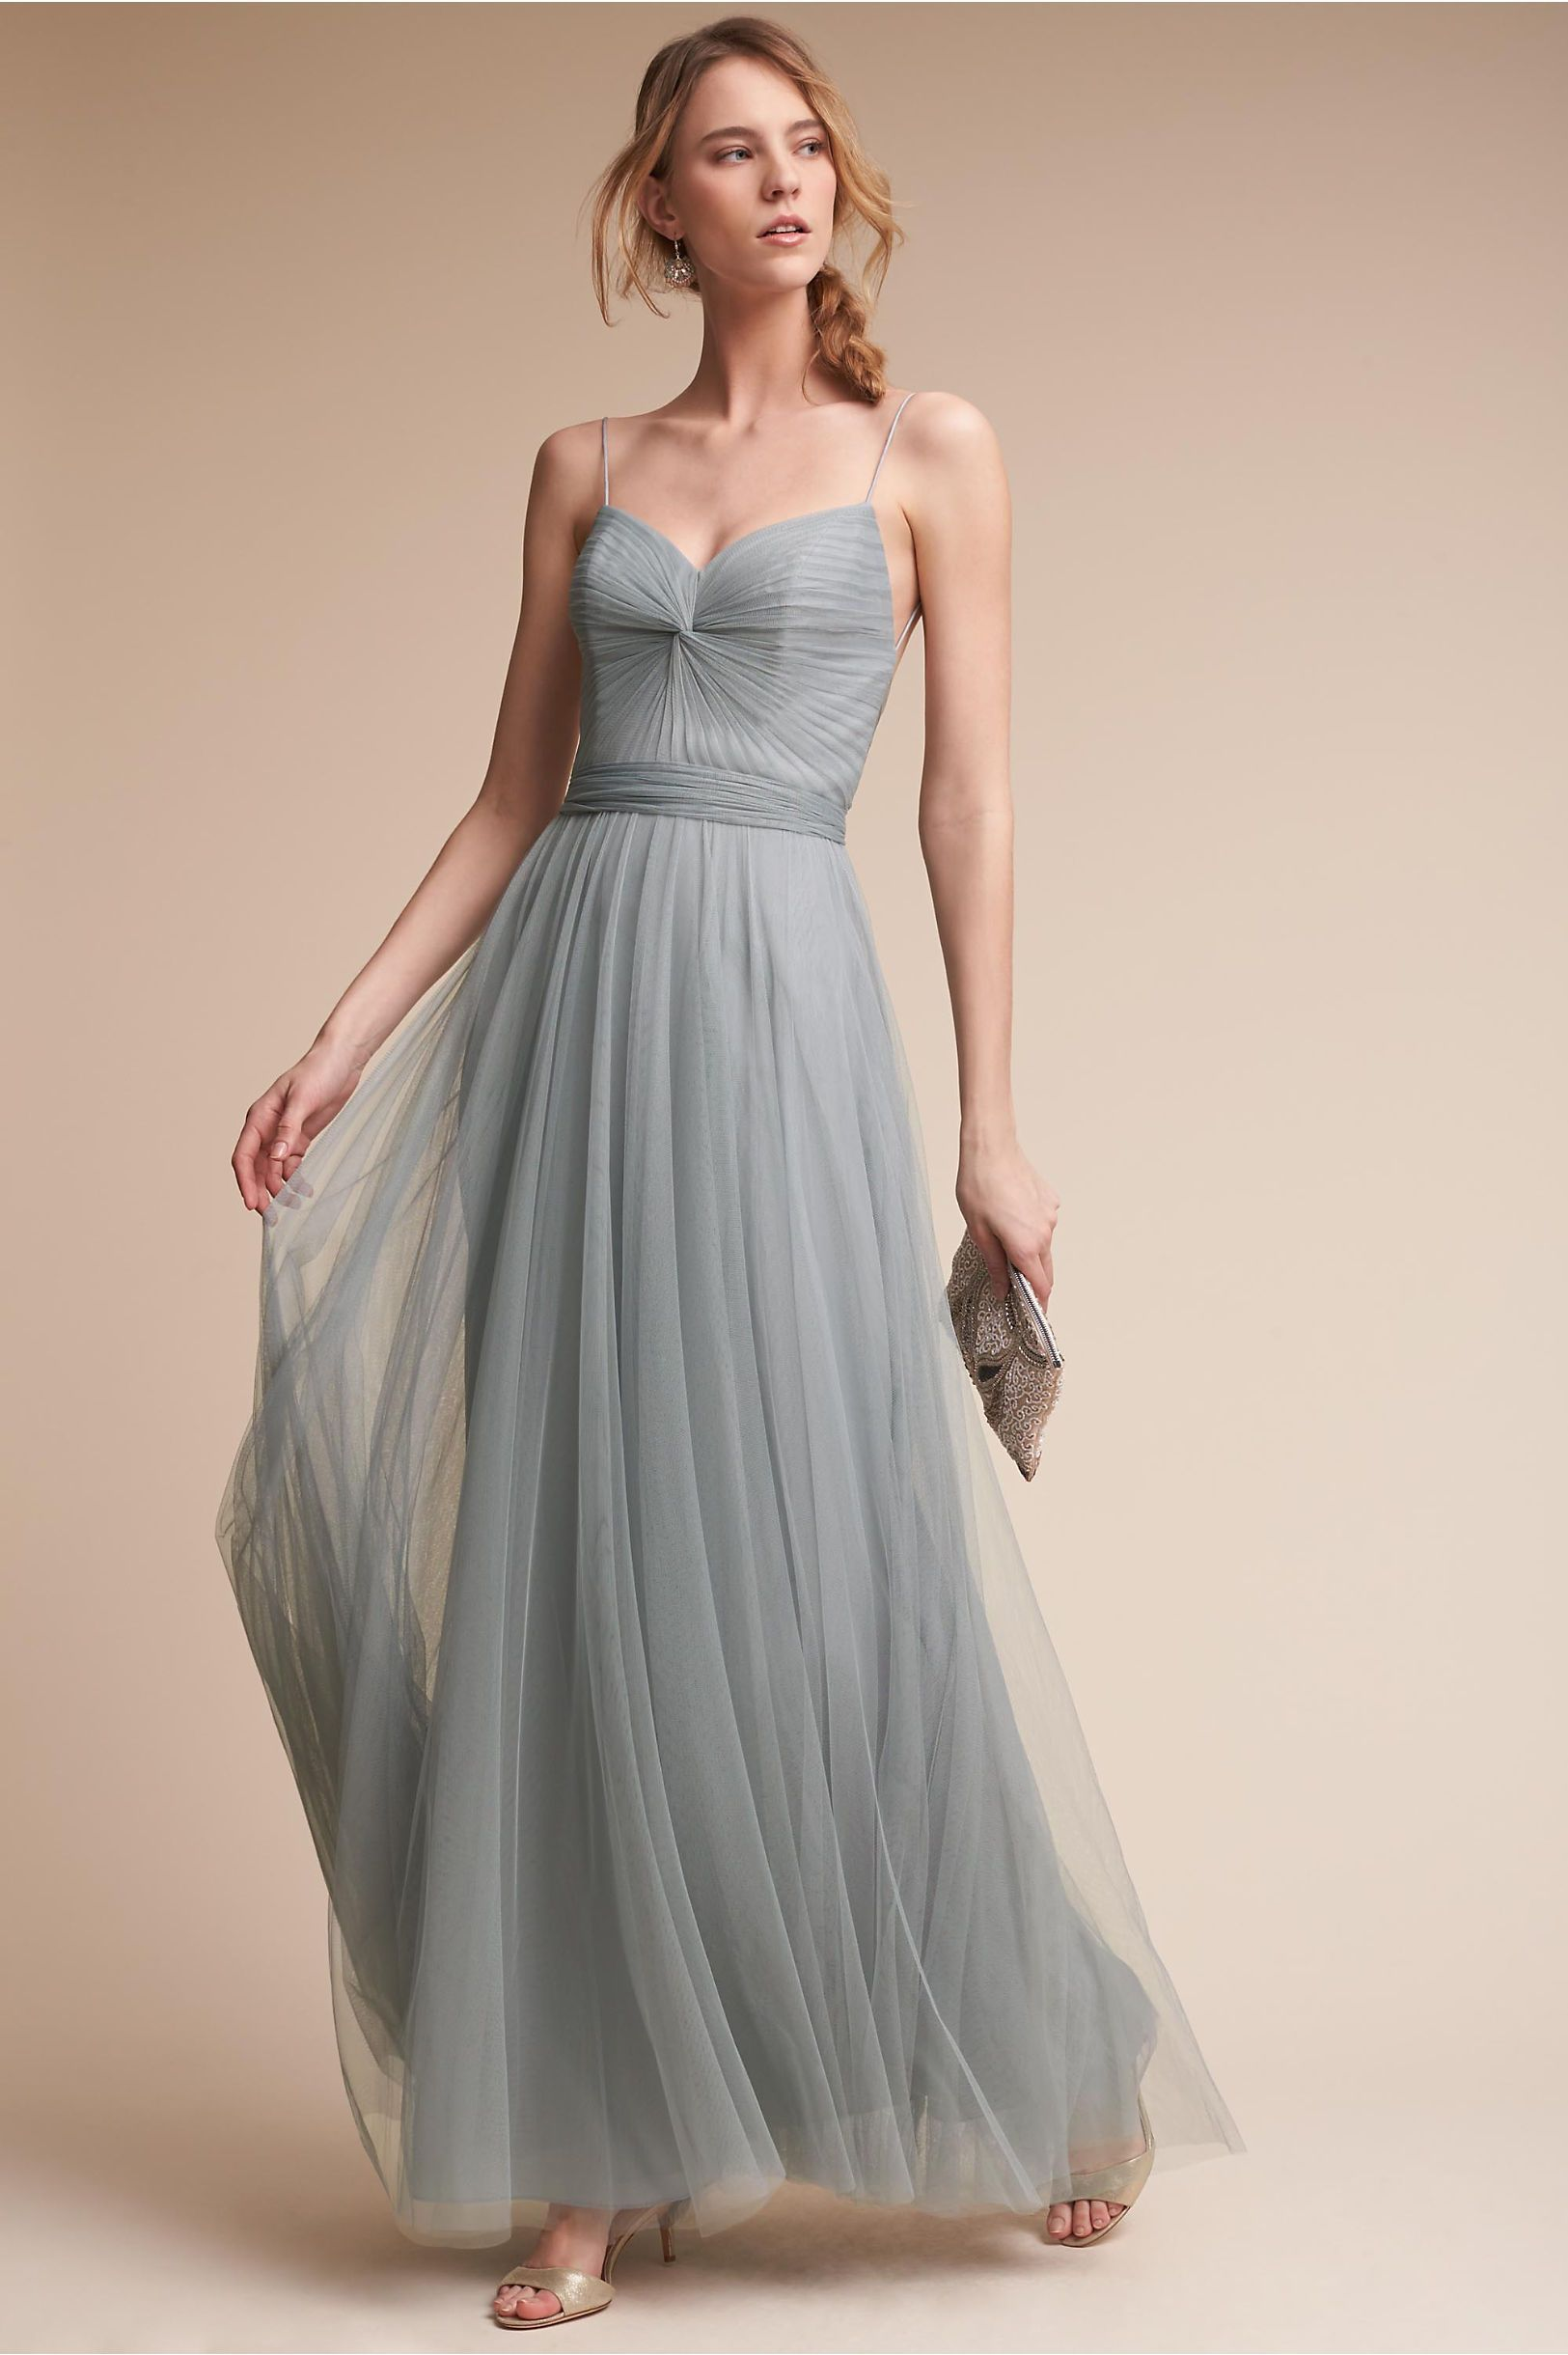 Blue gray bhldn tinsley dress in bridal party bridesmaid dresses blue gray bhldn tinsley dress in bridal party bridesmaid dresses long bhldn ombrellifo Gallery